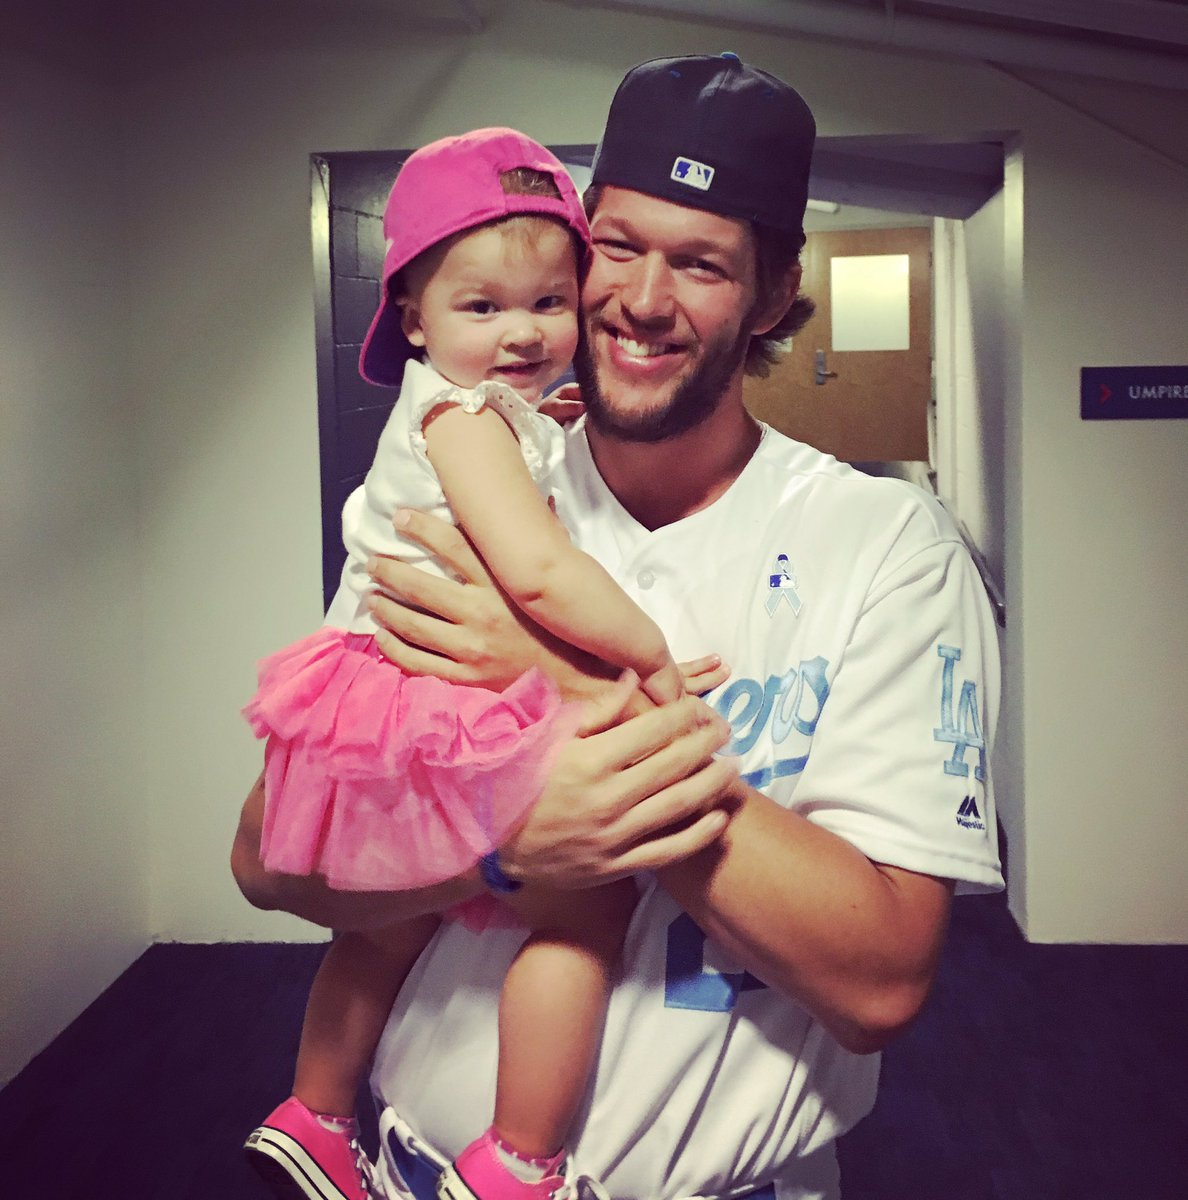 Happy Father's Day @ClaytonKersh22! We absolutely adore you! Excited to add a BOY to our chaos!